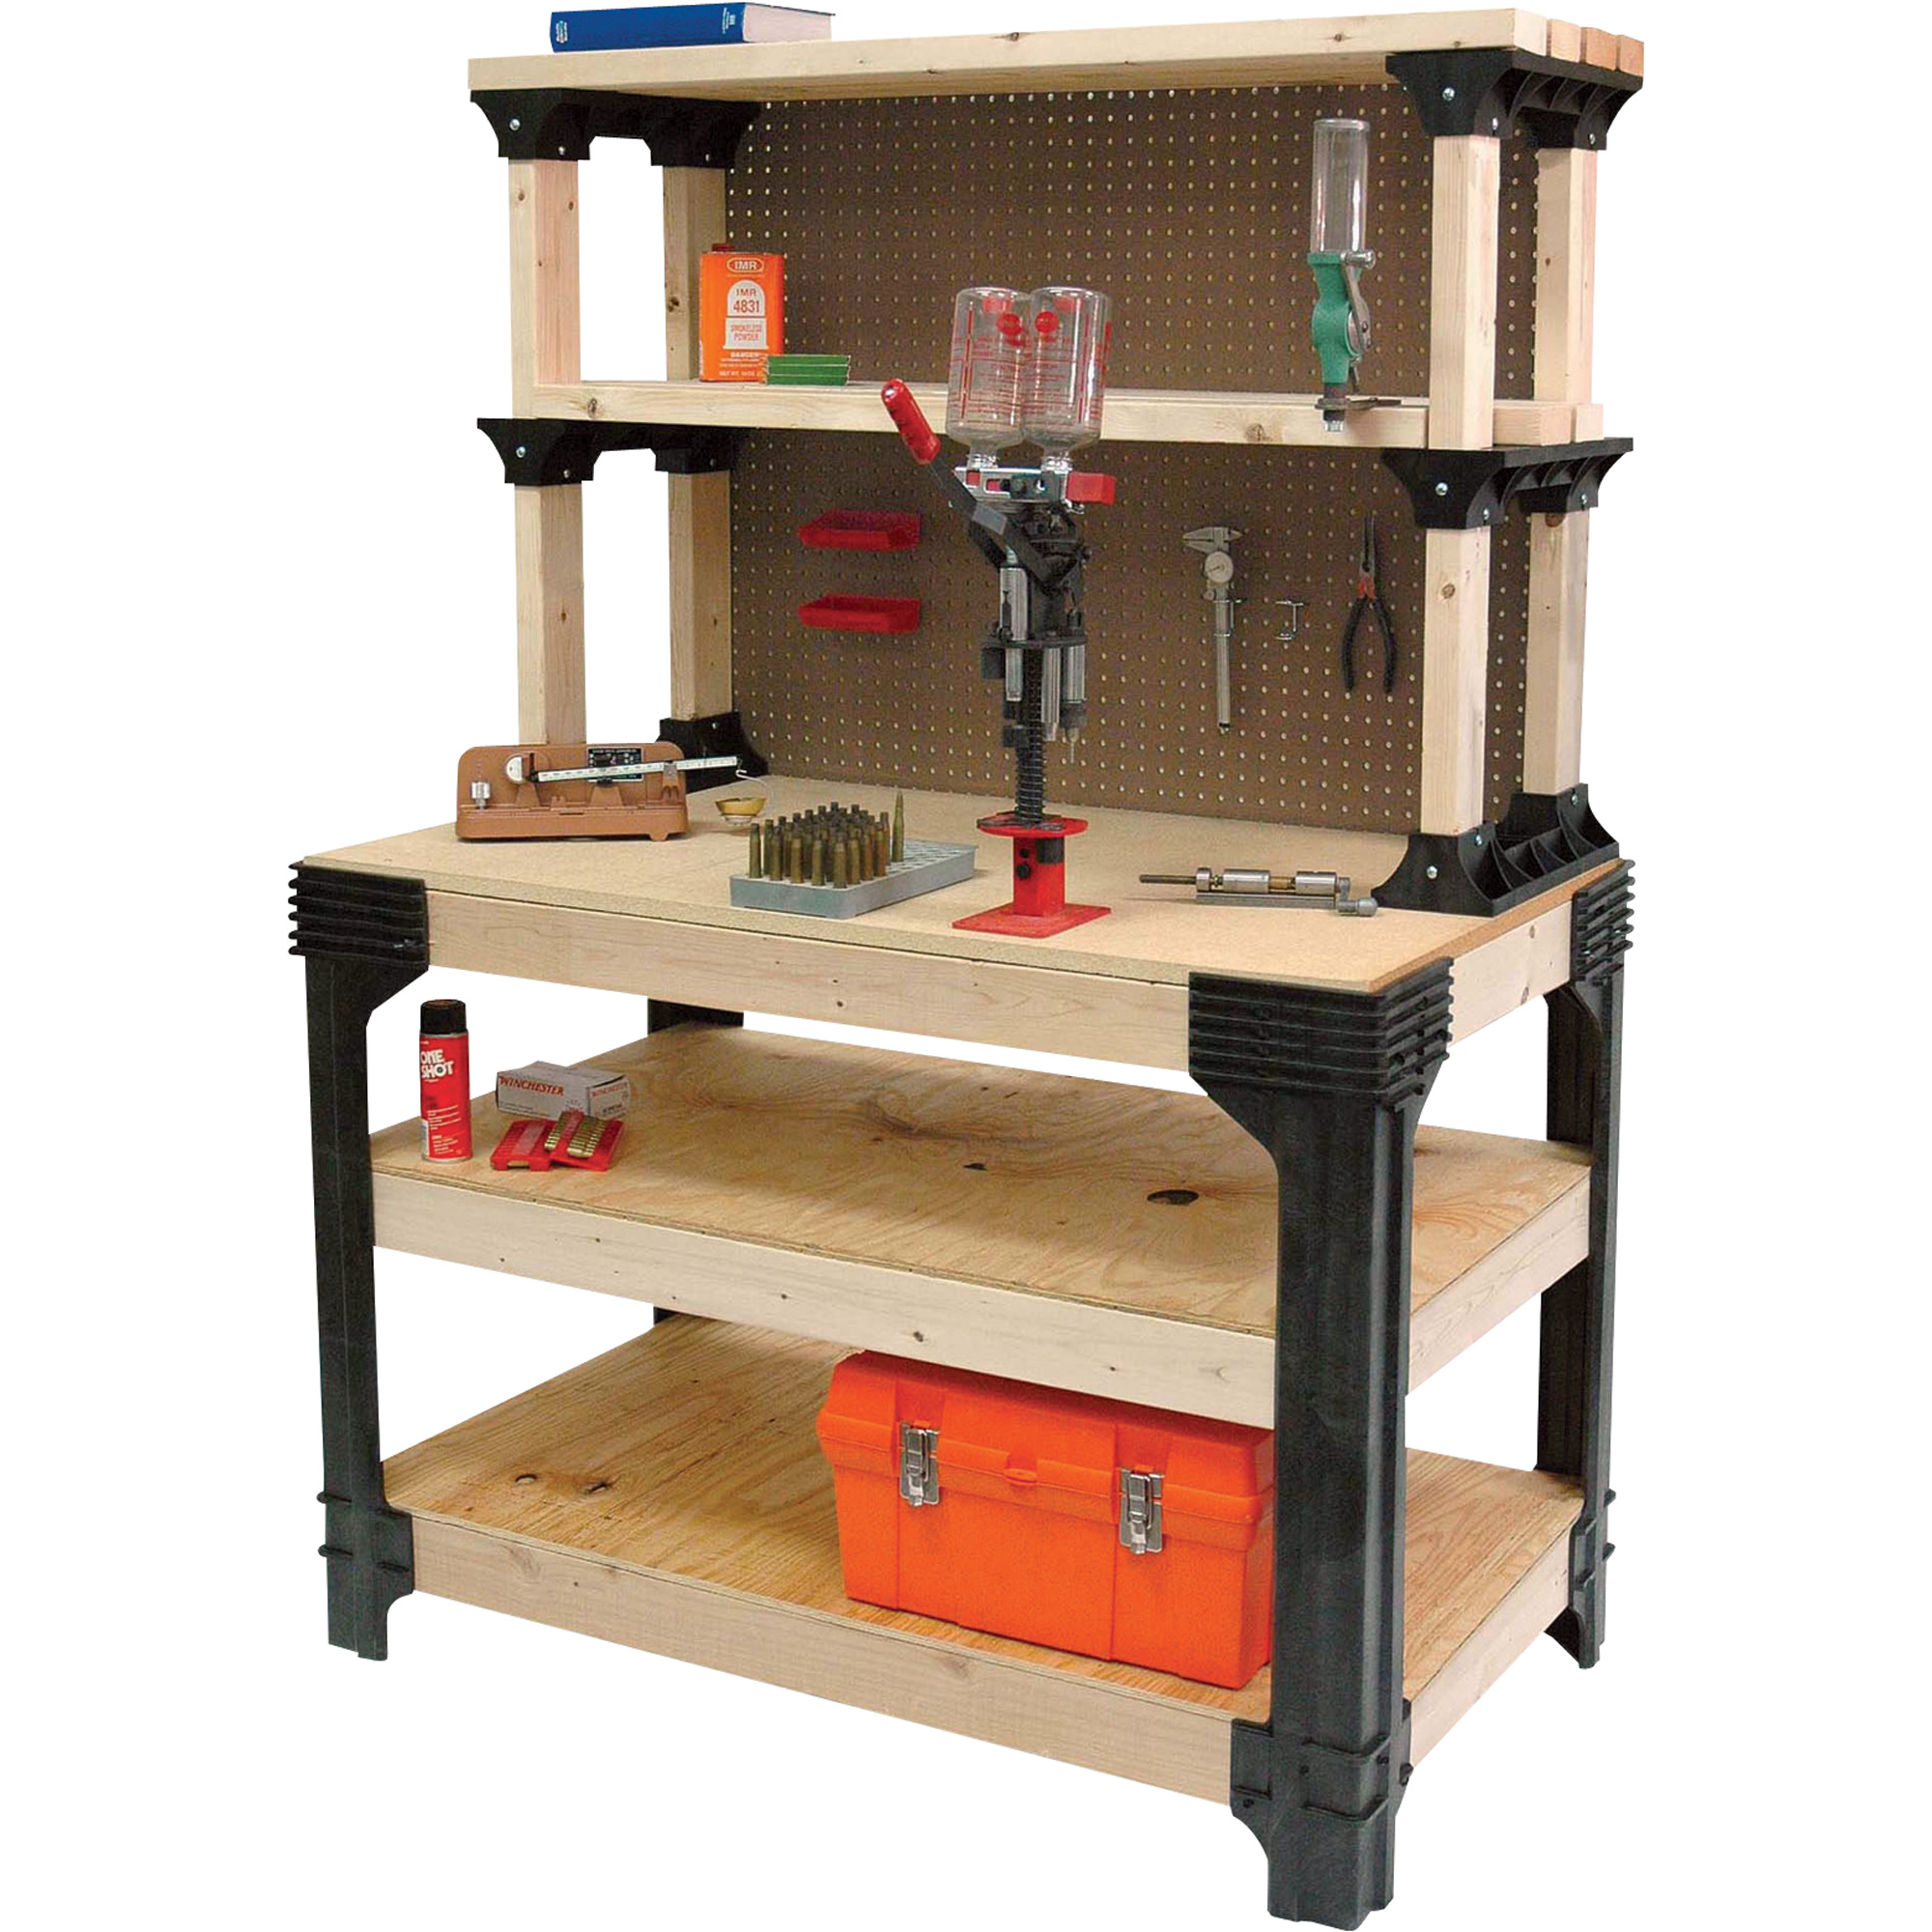 Wall Mounted Folding Workbench | Foldaway Workbench | Fold Up Workbench Plans